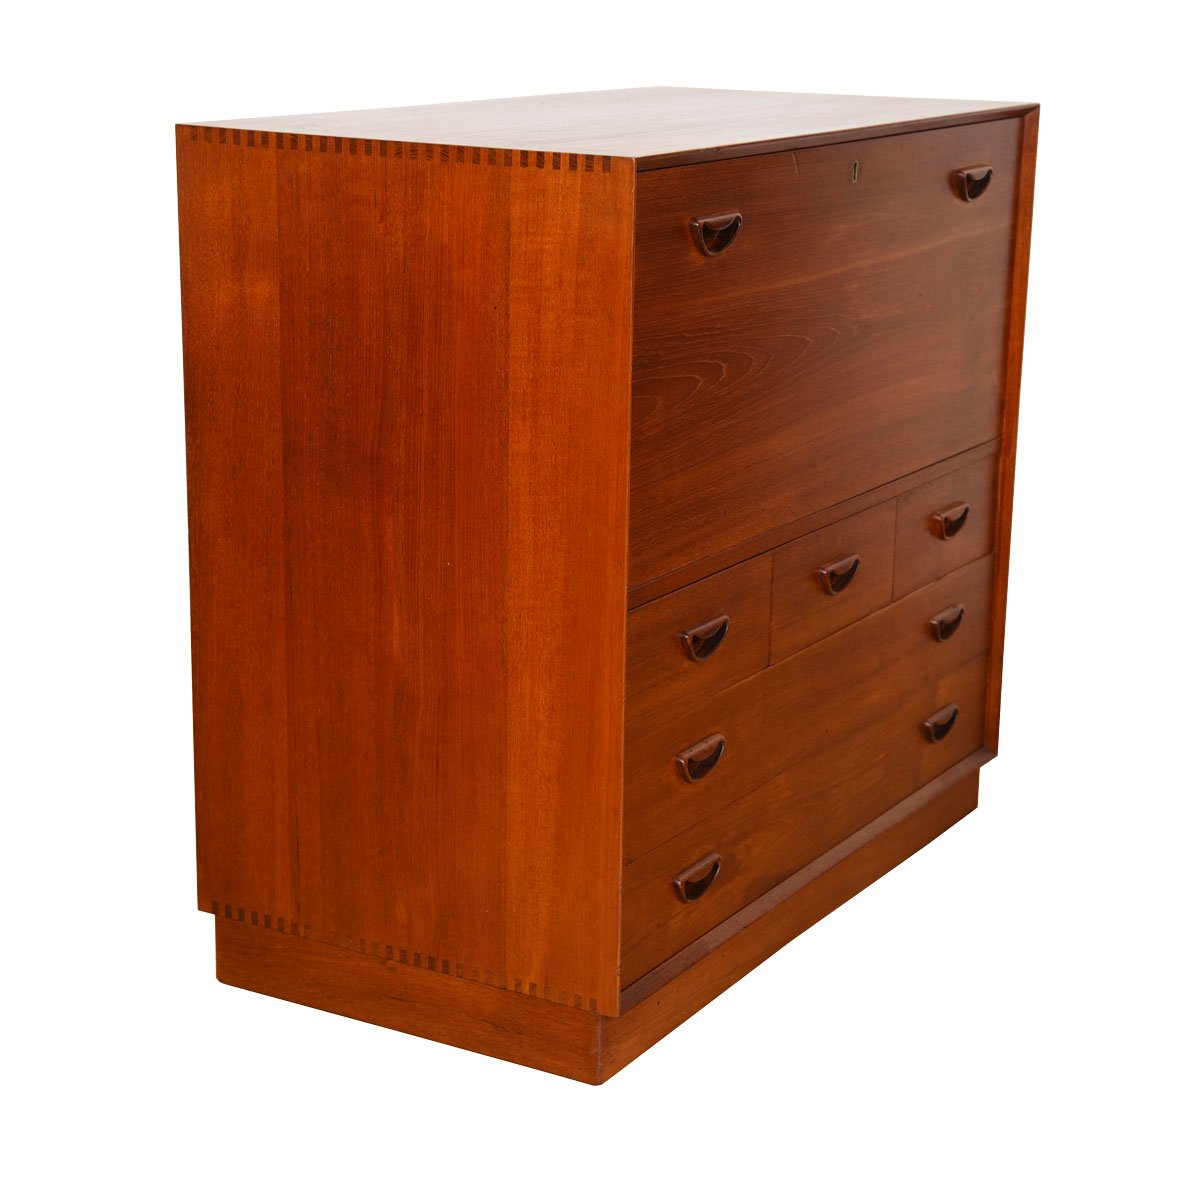 Peter Hvidt Solid-Teak Danish Drop-Down Storage / Bar Cabinet.